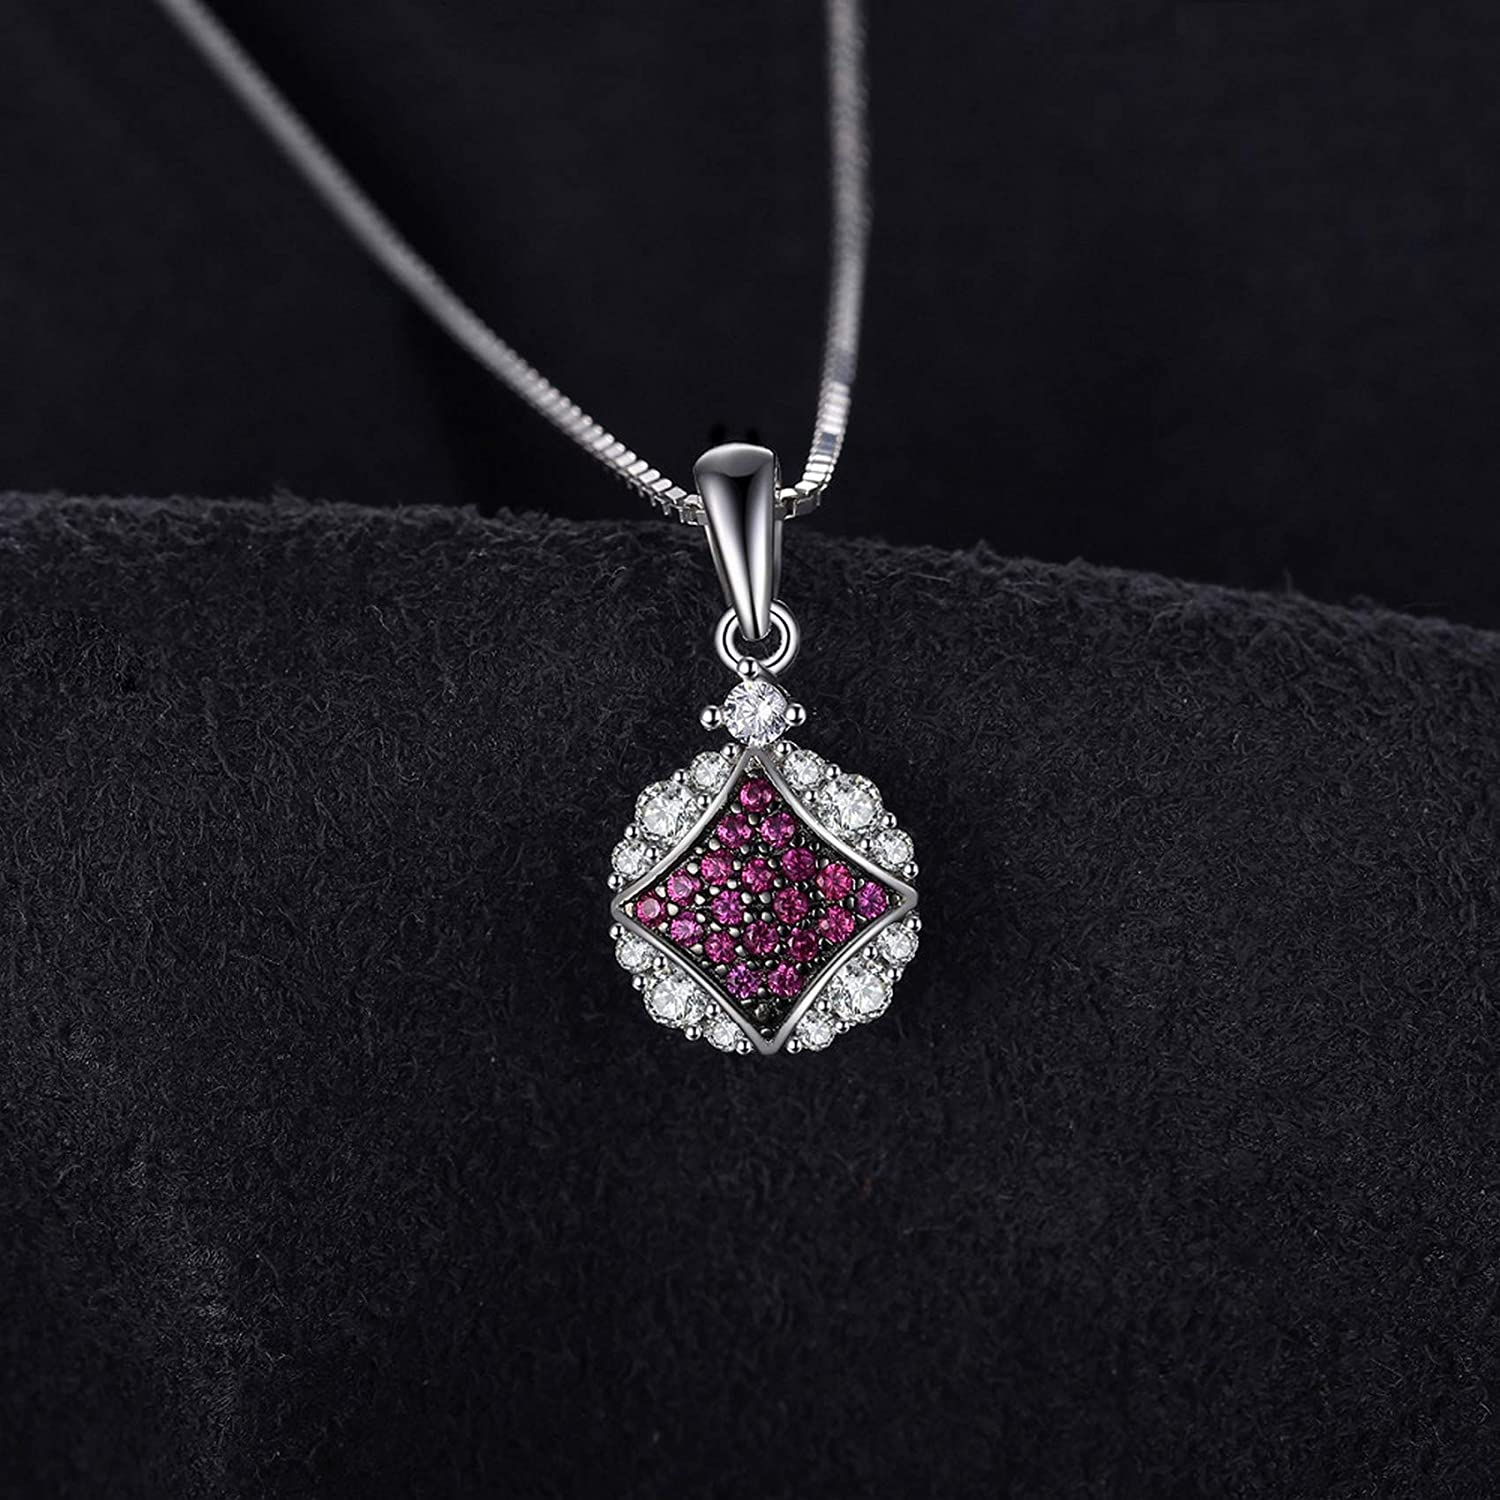 MMC Silver Pendants Vintage Fashion Ruby Round Charms Necklaces for Womens